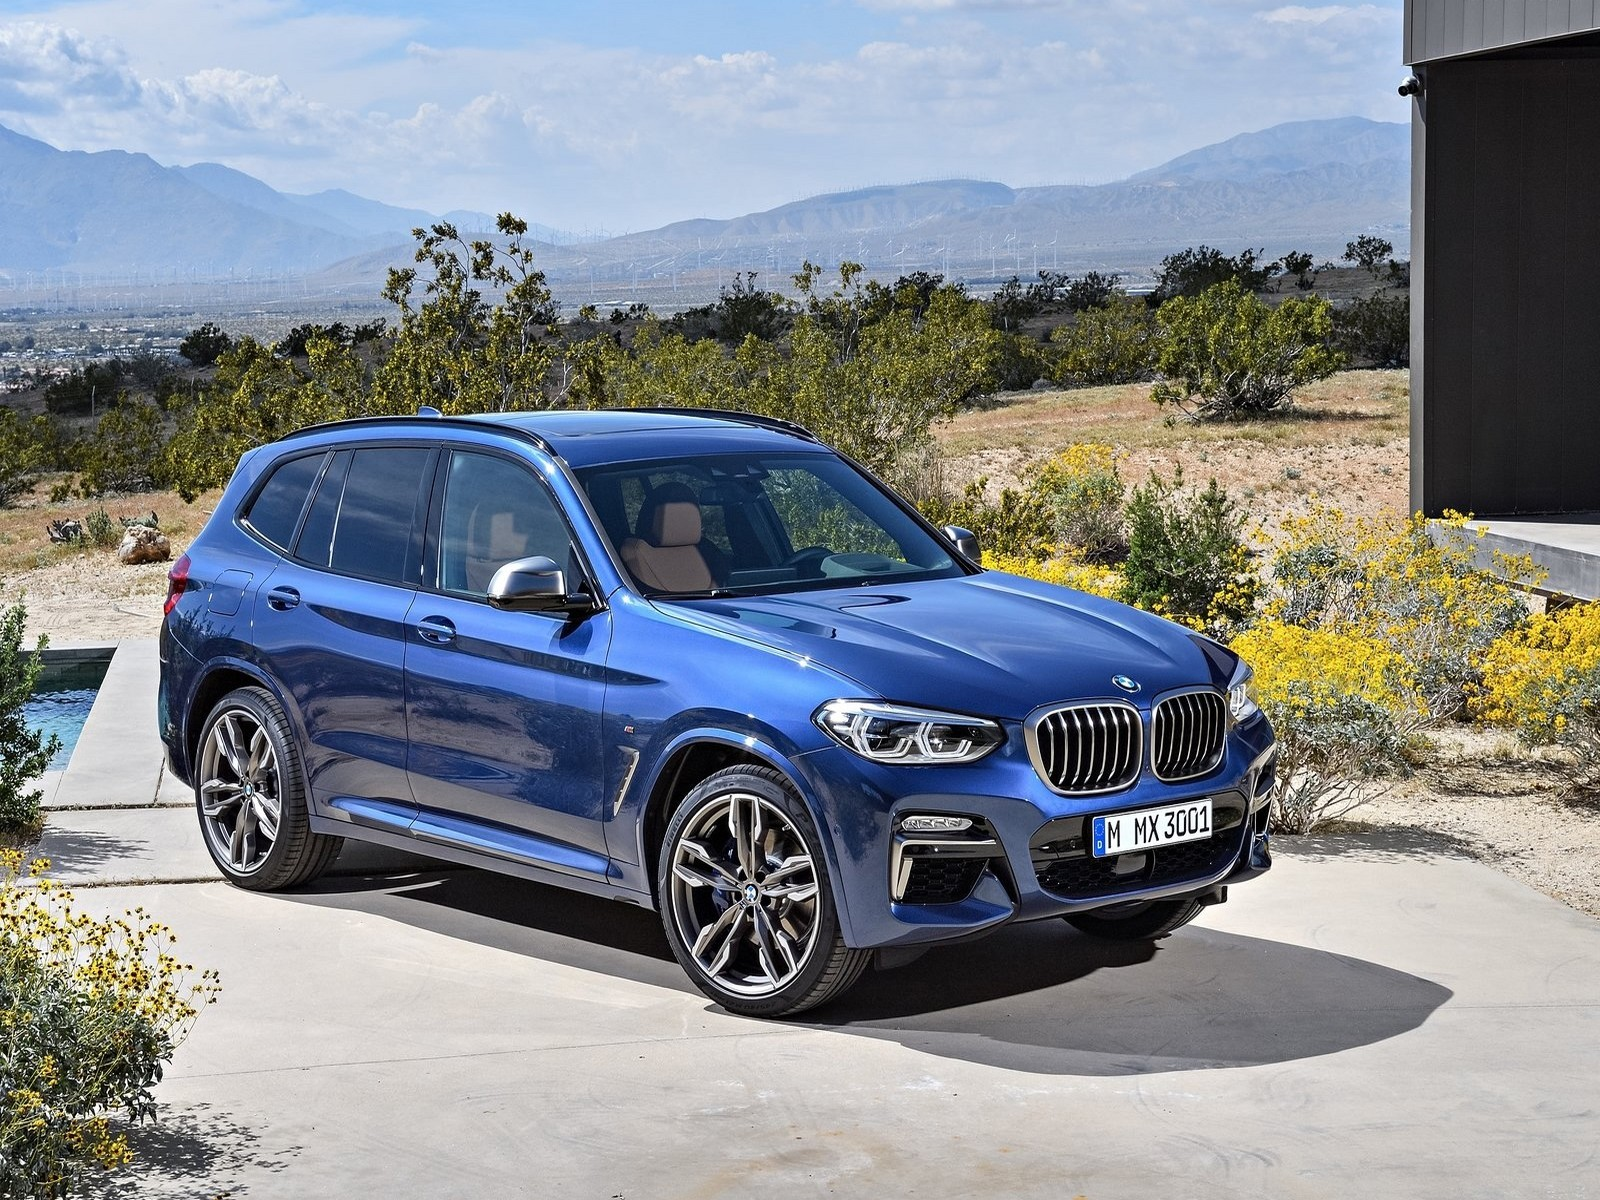 le nouveau bmw x3 et x3 m40i 2018 les premi re photos du. Black Bedroom Furniture Sets. Home Design Ideas